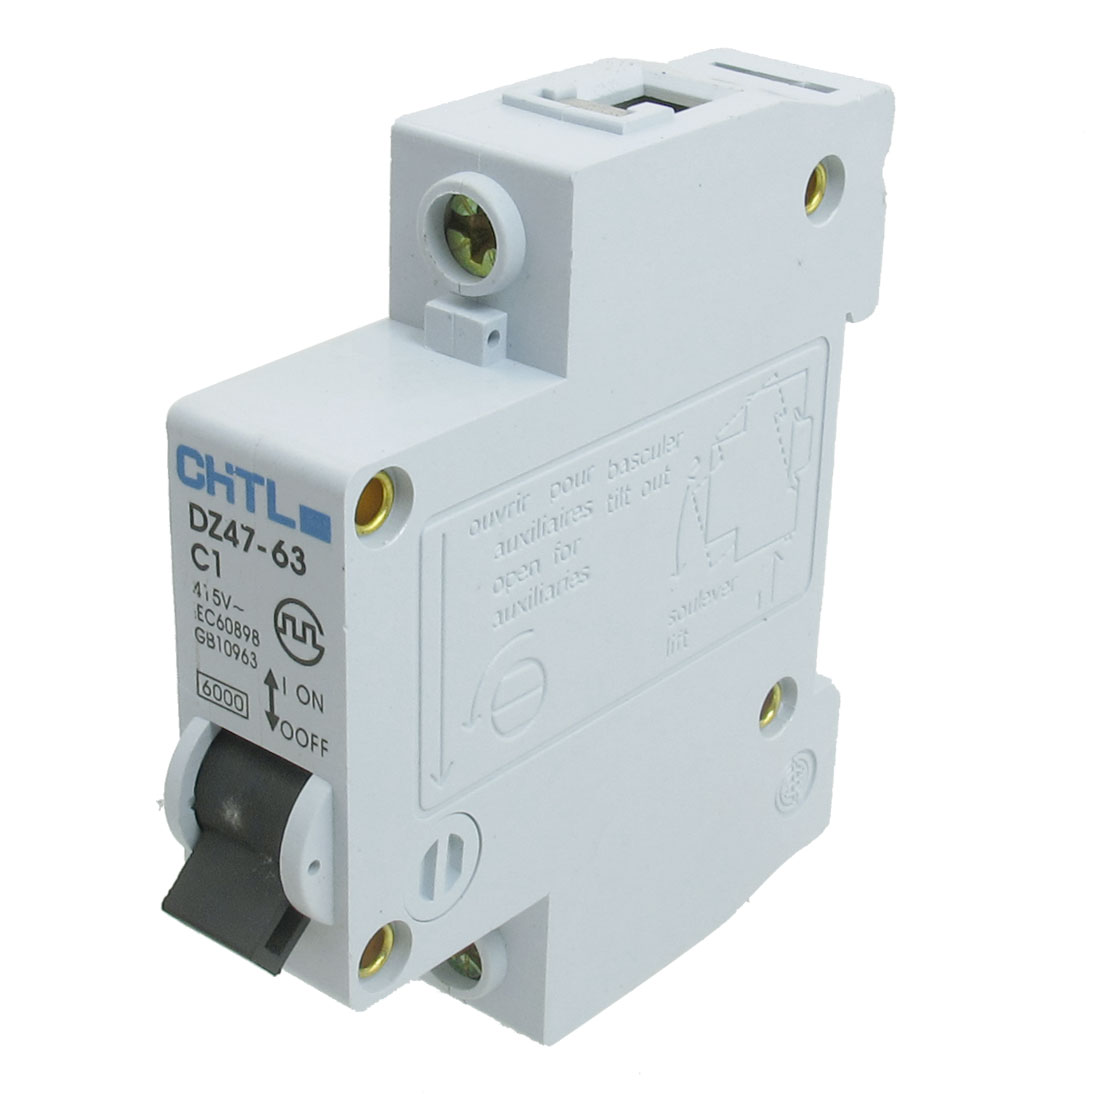 AC 415V Rated Current 1A Single Pole Miniature Circuit Breaker